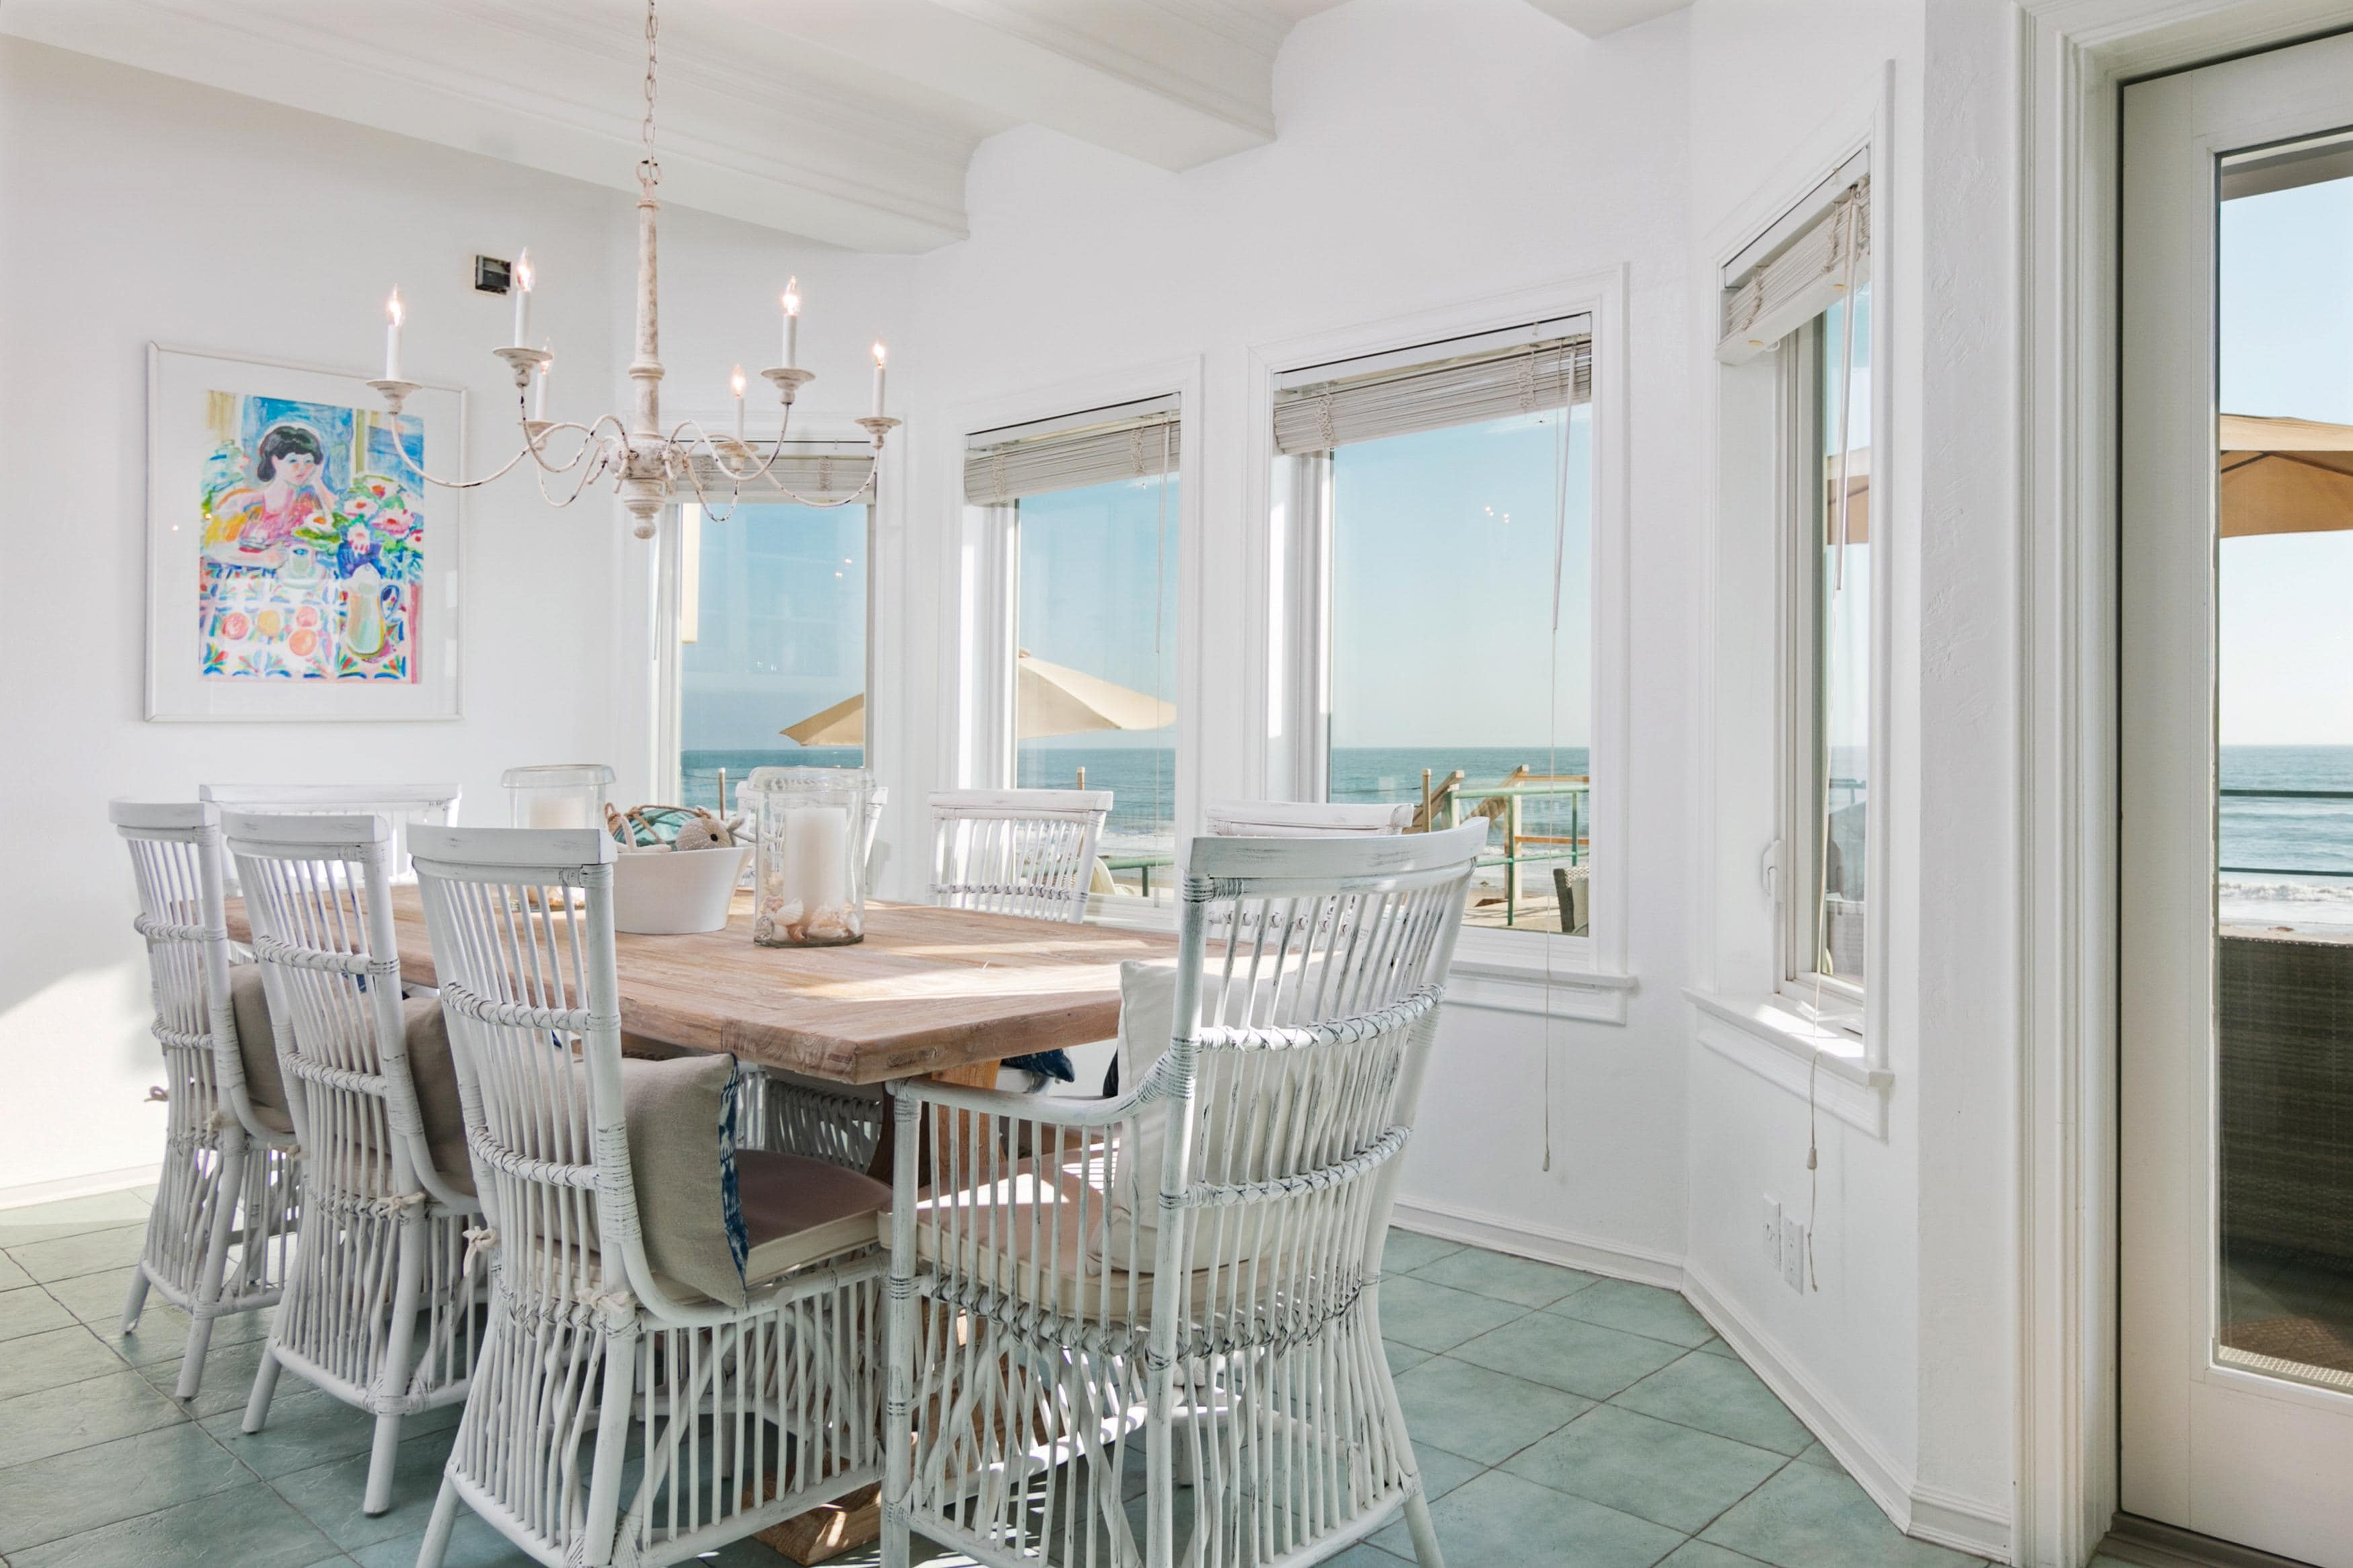 The dining area offers seating for 8 with spectacular beach views.